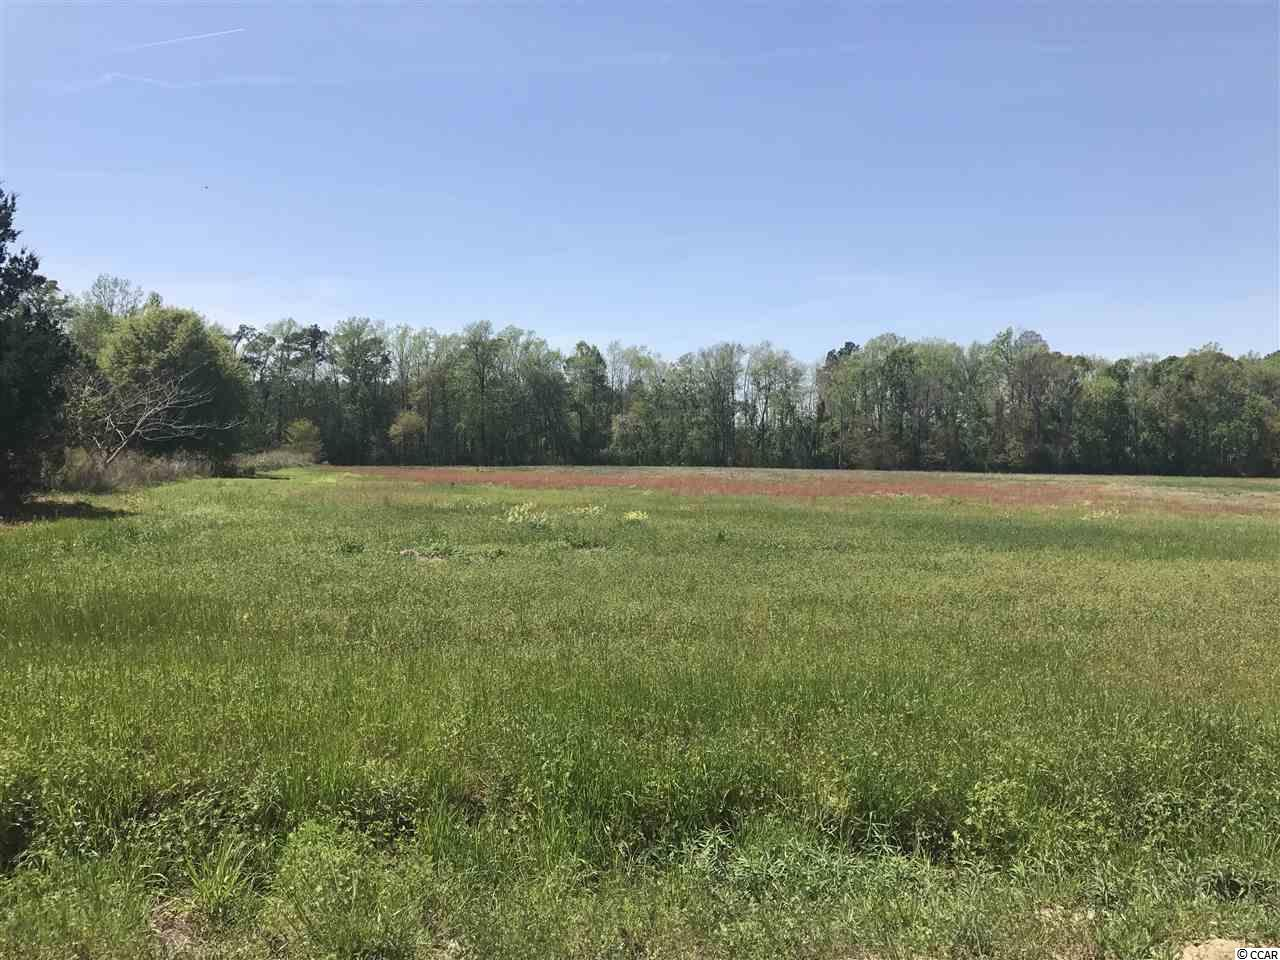 Looking to build you dream home out in the country? This lot will fit your needs perfectly! With almost two acres, this property already has a septic permit and public water available for access.